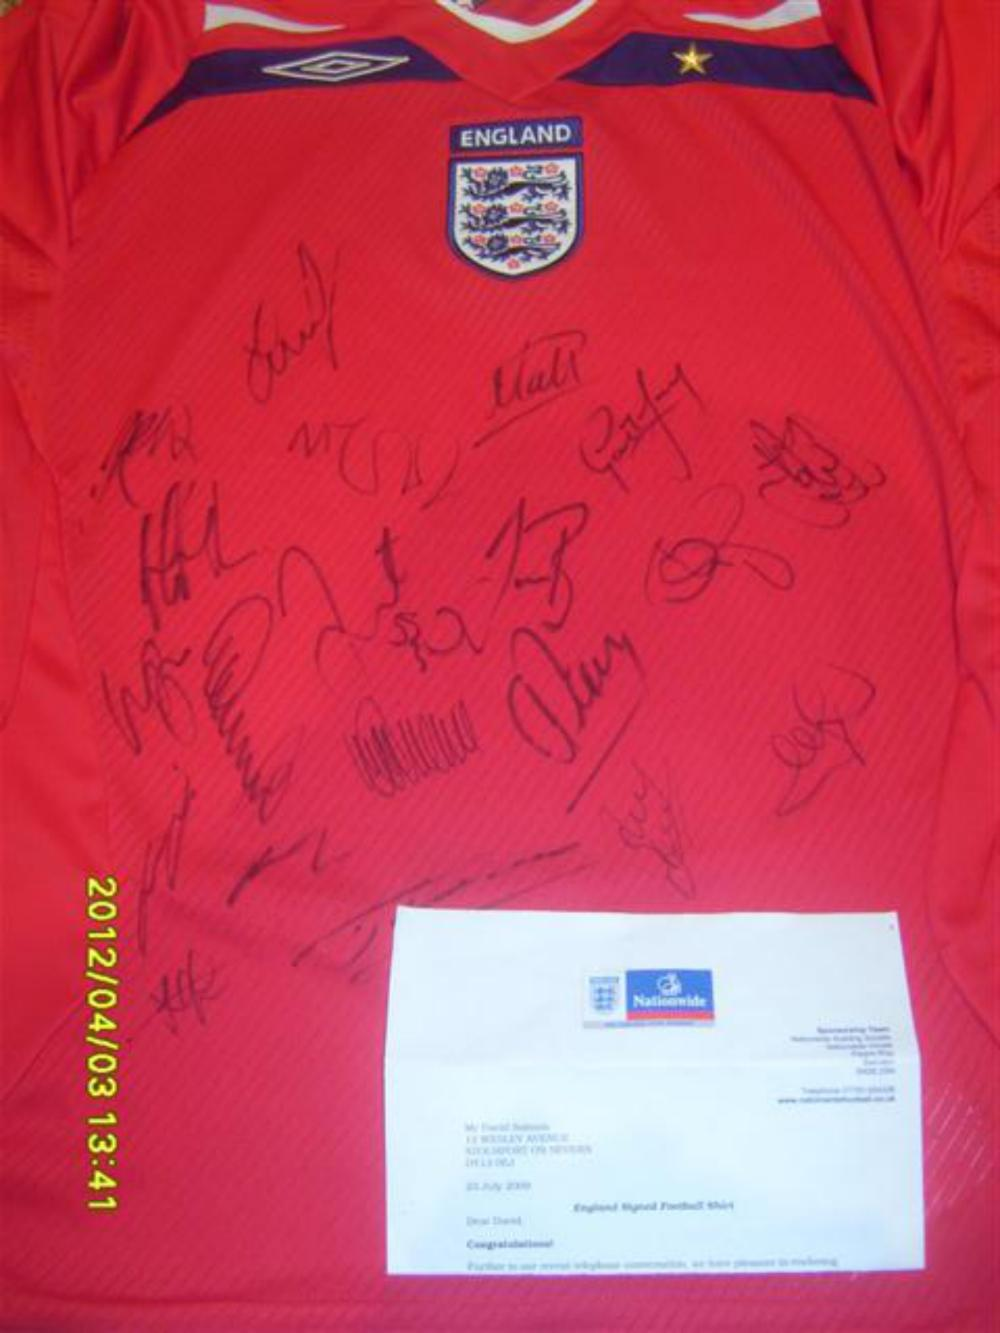 Lot 257: England Team Signed Shirt No 2 - Signed by Carrick, Barry, Neville,Matthew Upson, and many more